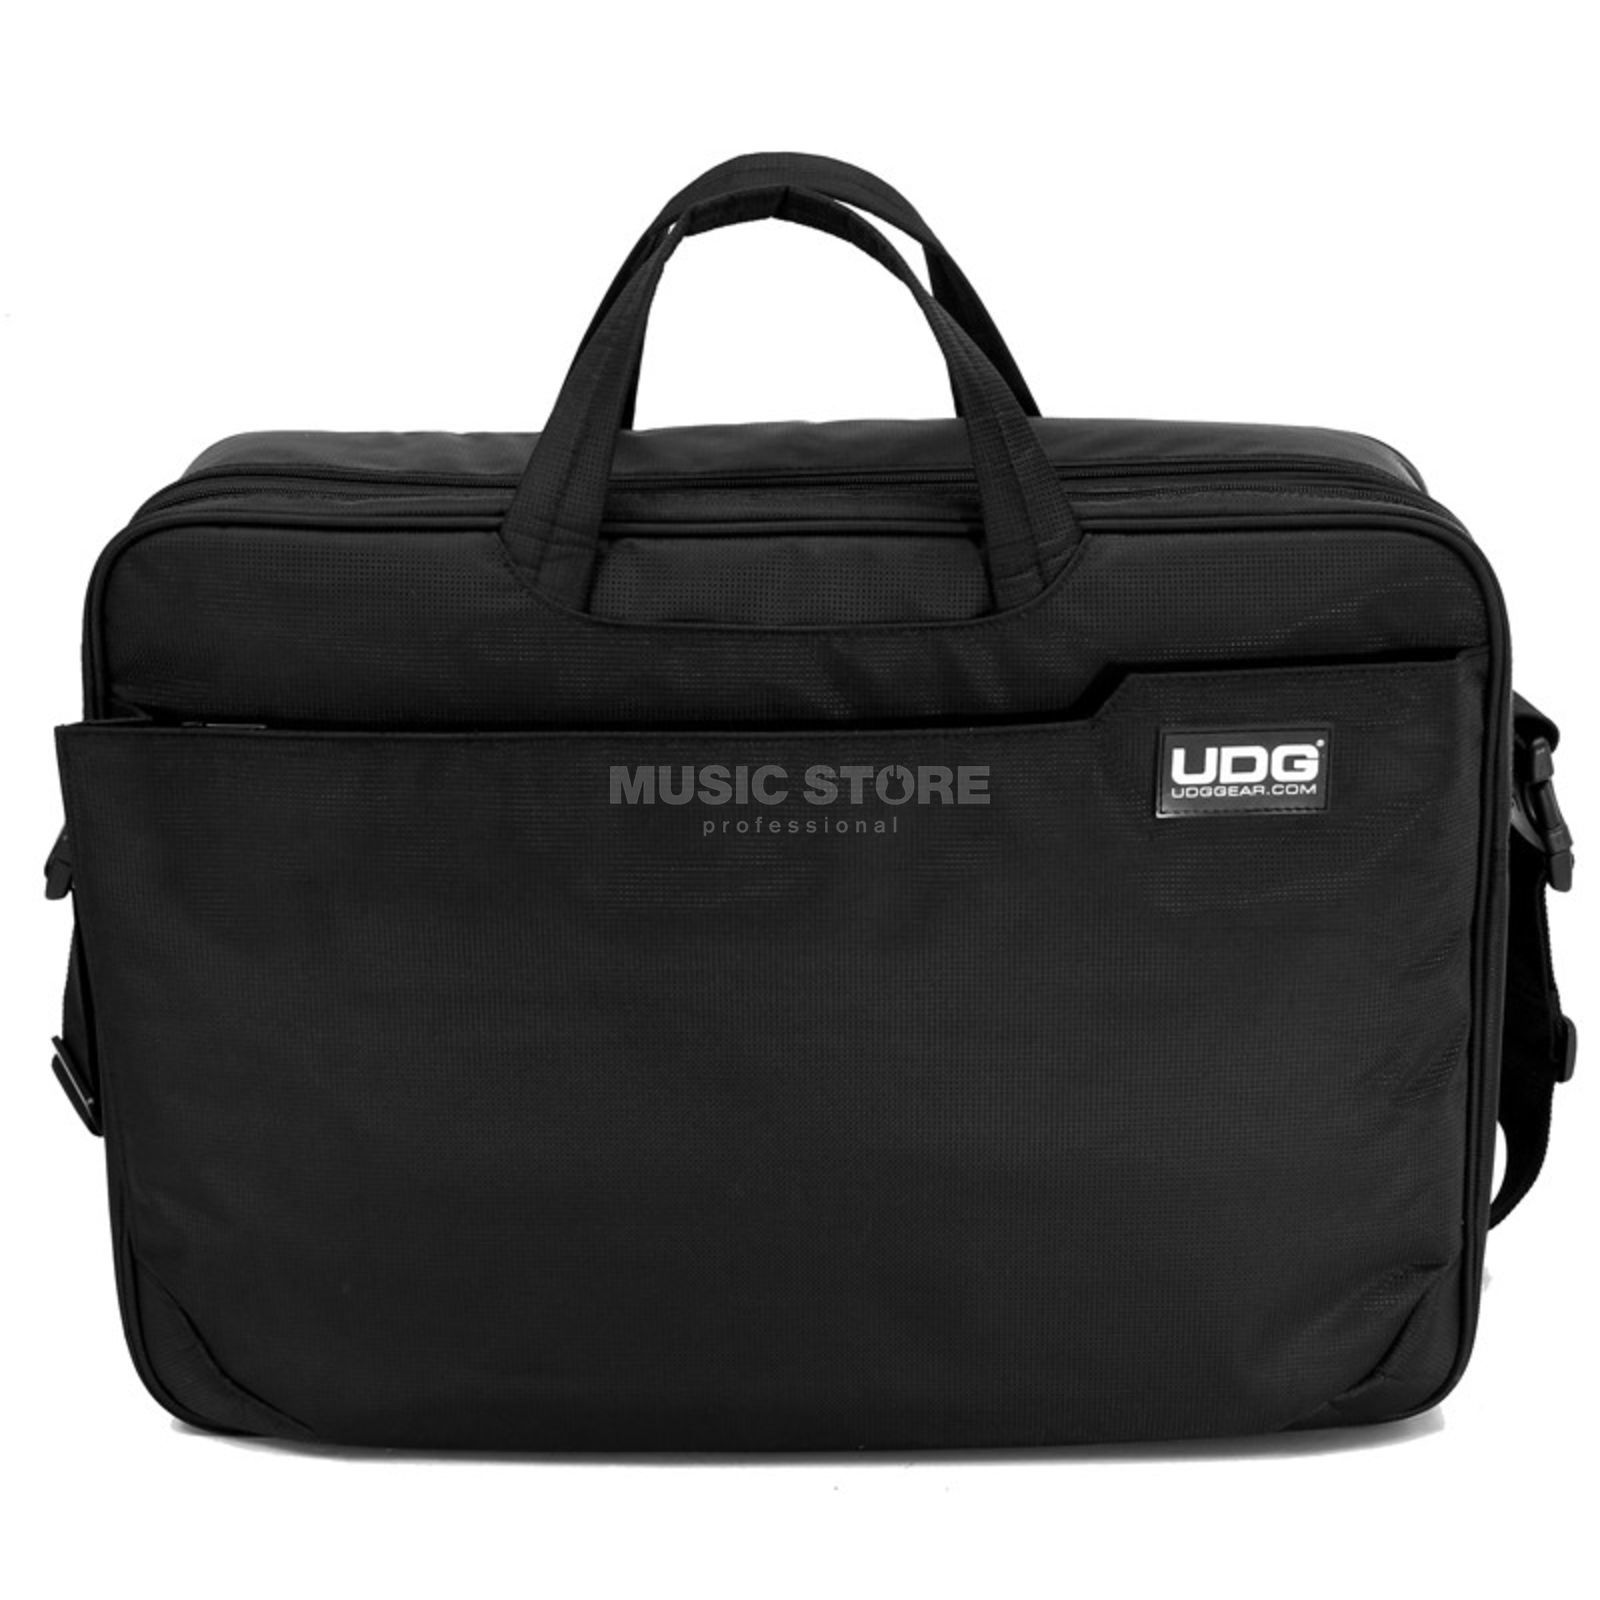 UDG NI S4 MIDI Controller Bag Black/Orange (U9013) Produktbild